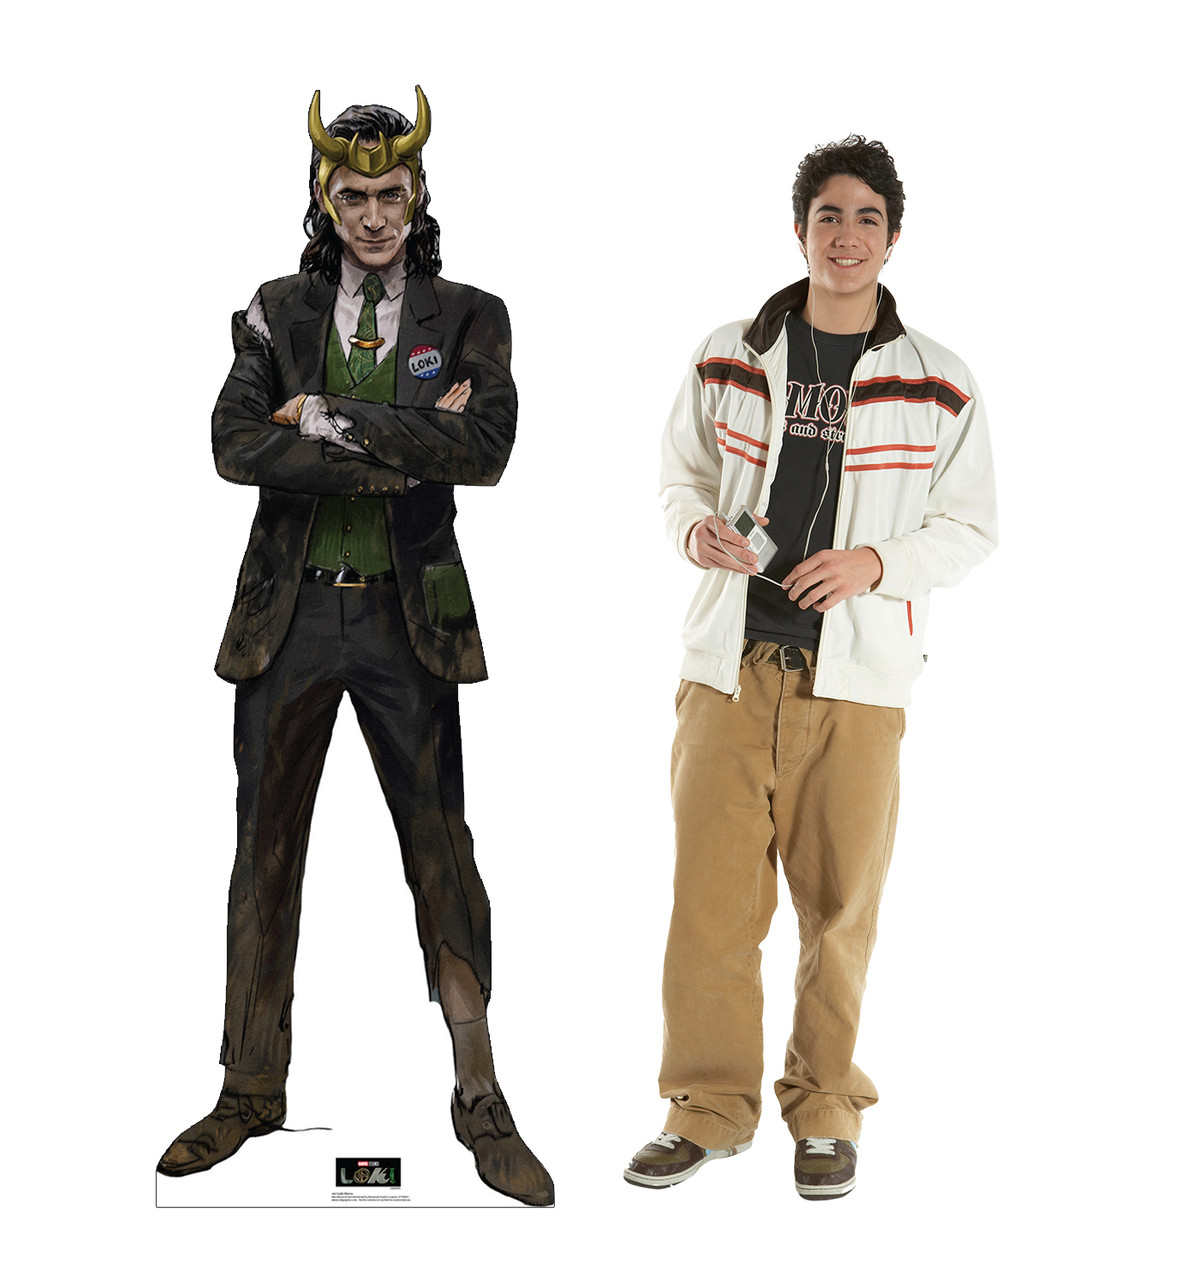 Life-size cardboard standee of Loki Horns from Marvel/Disney+ series Loki with back and front dimensions.